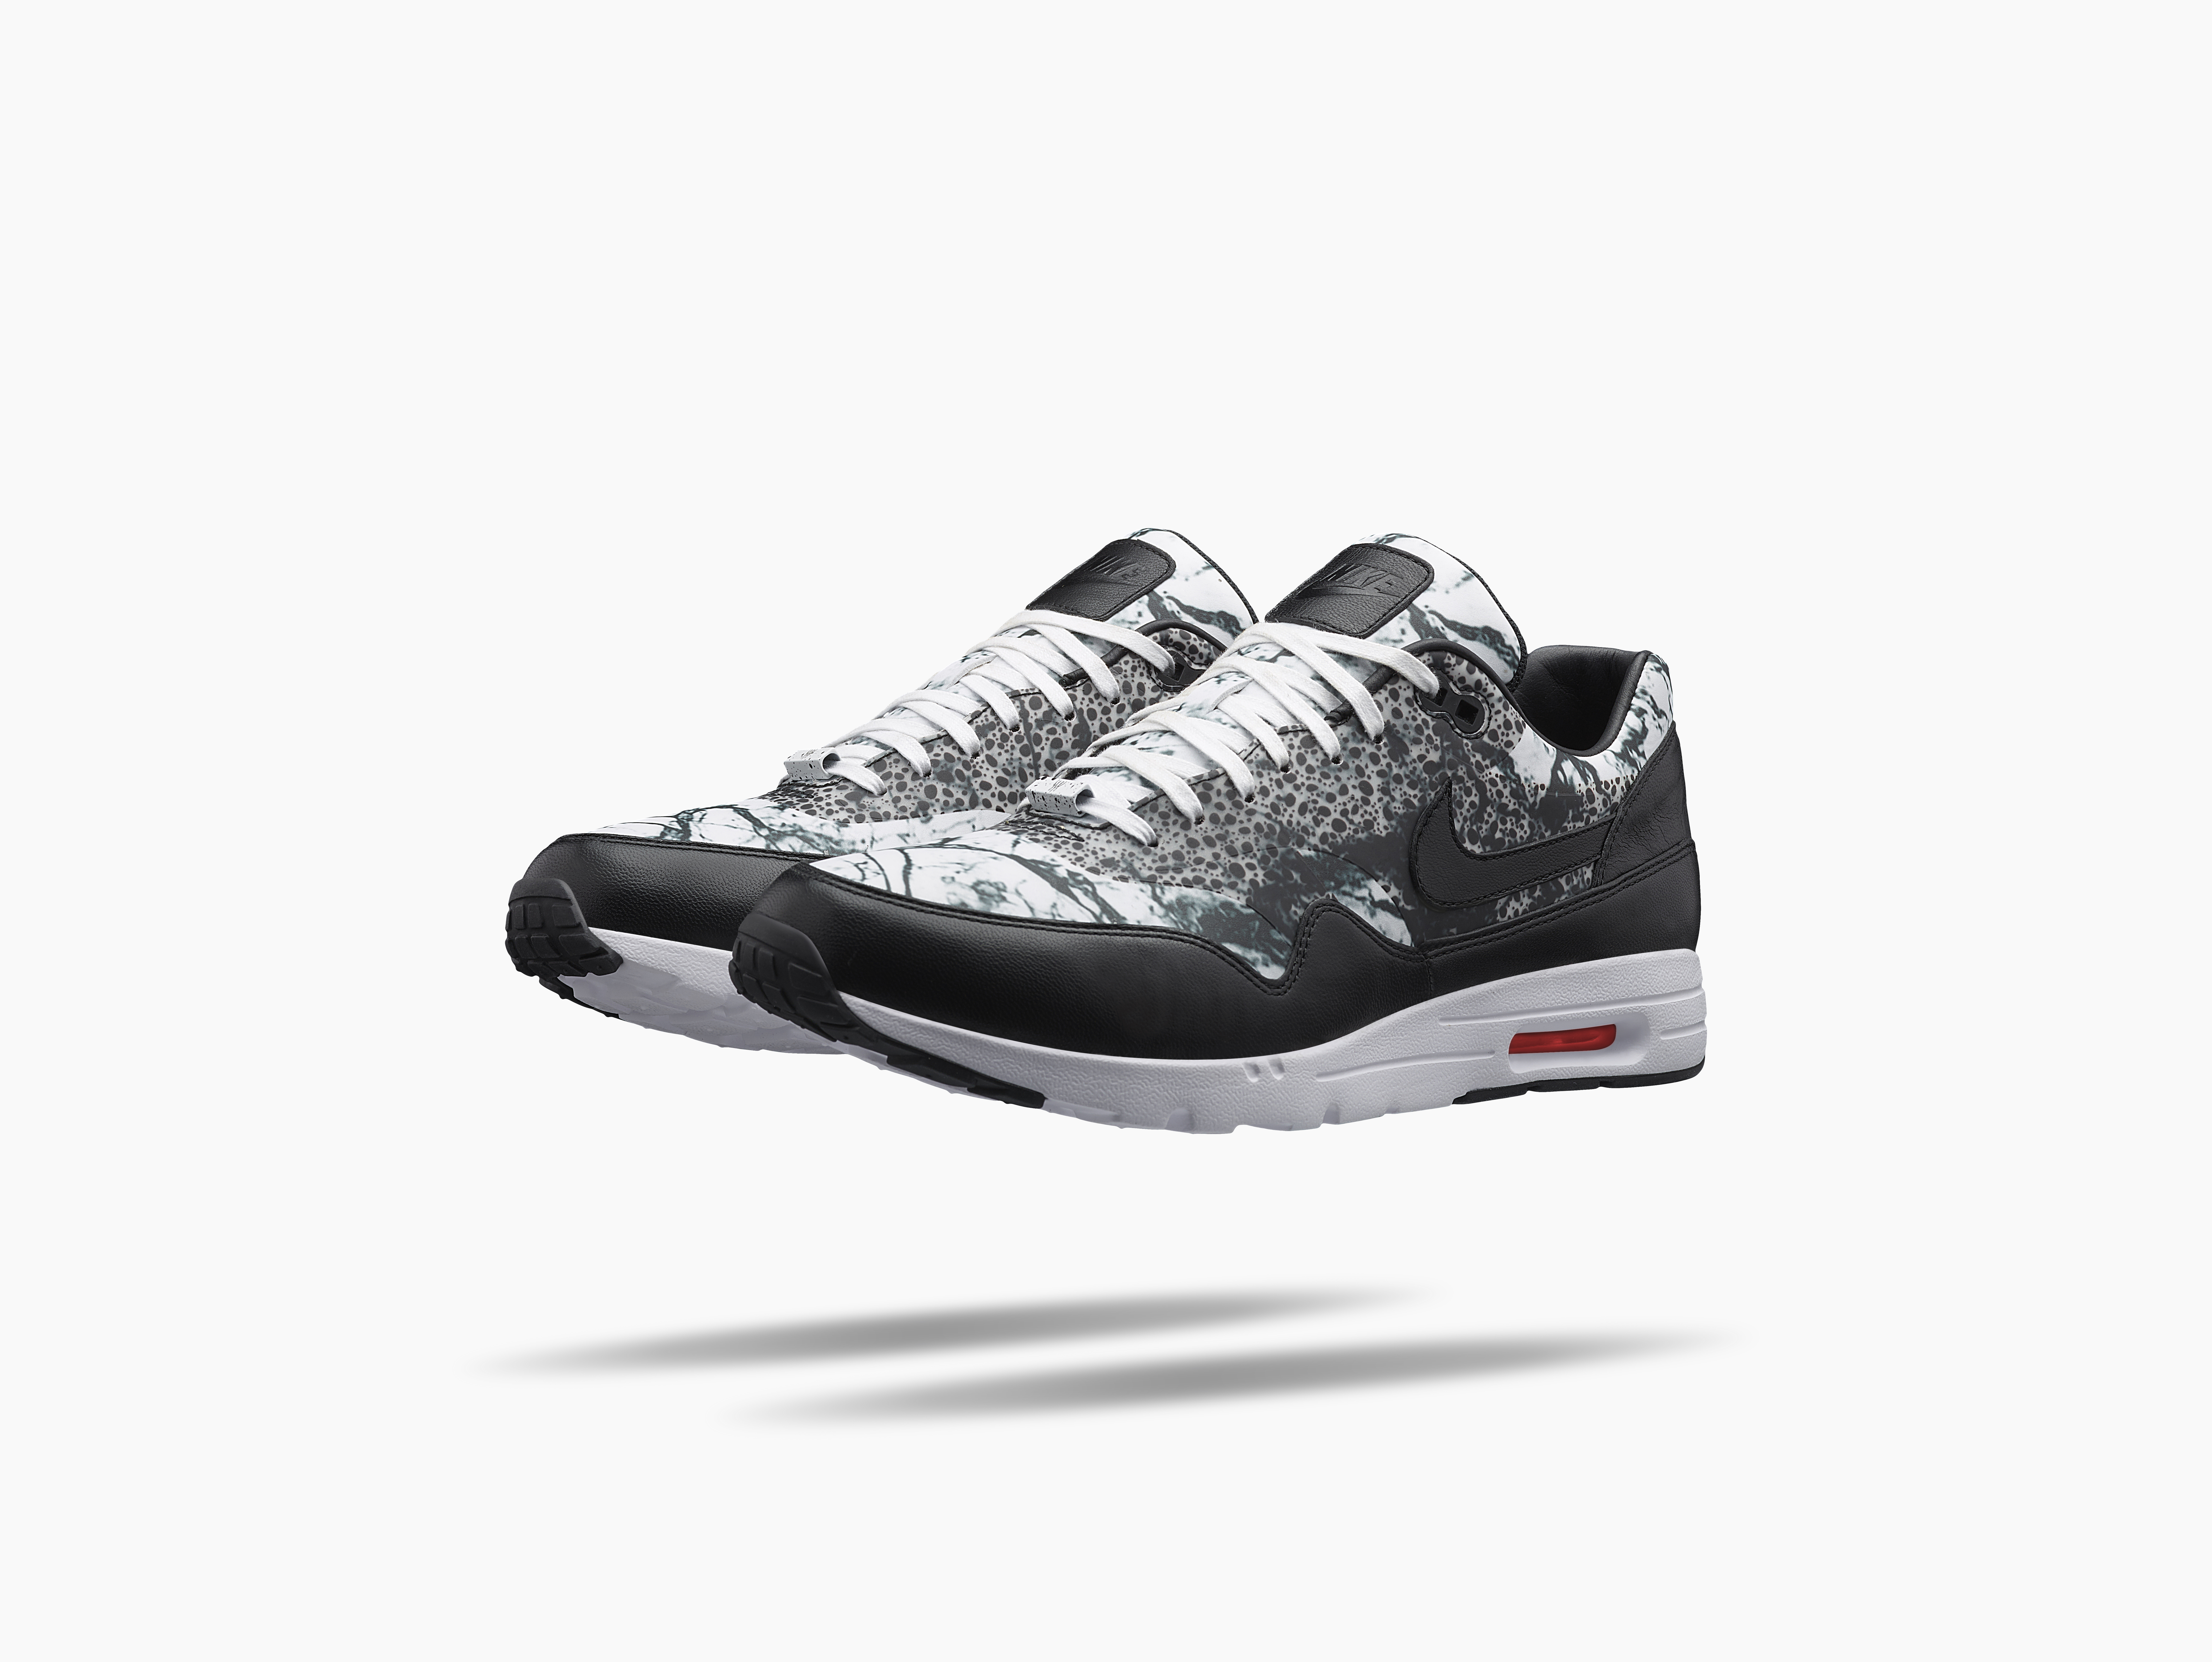 hot sale online cec73 21bb3 NikeCourt Flare 4 45203 NikeCourt Flare 1 45200  NikeCourt Air Max 1 Ultra 3 45247 NikeCourt Air Max 1 Ultra 2 45205  NikeCourt Air Max 1 Ultra 4 45207 ...